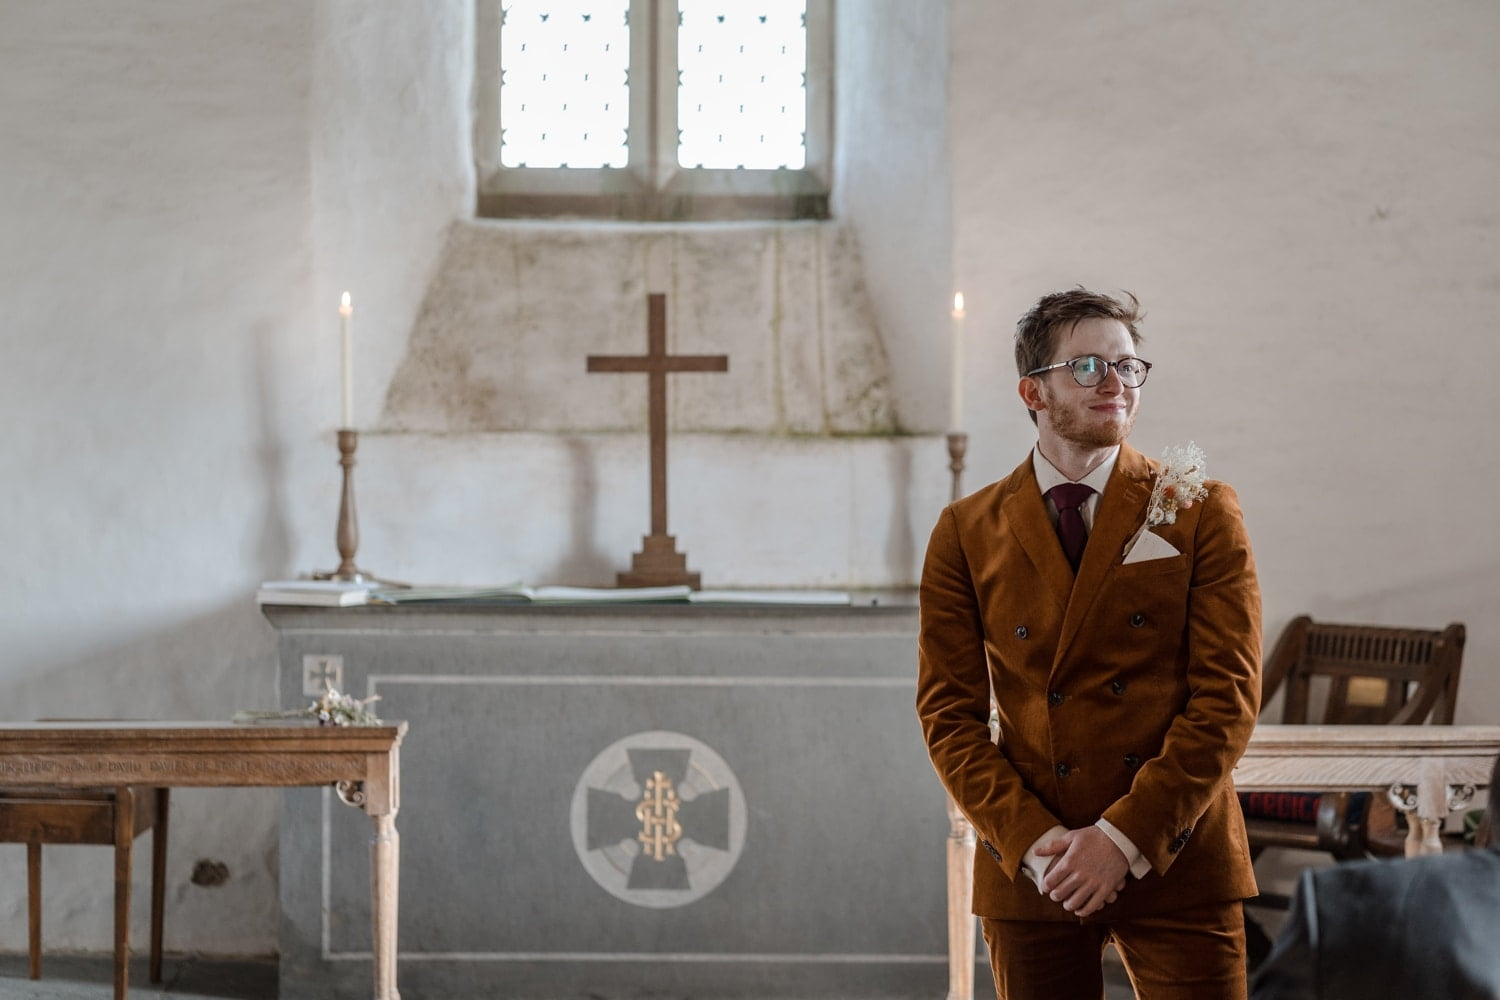 Groom at alter in Mwnt Church